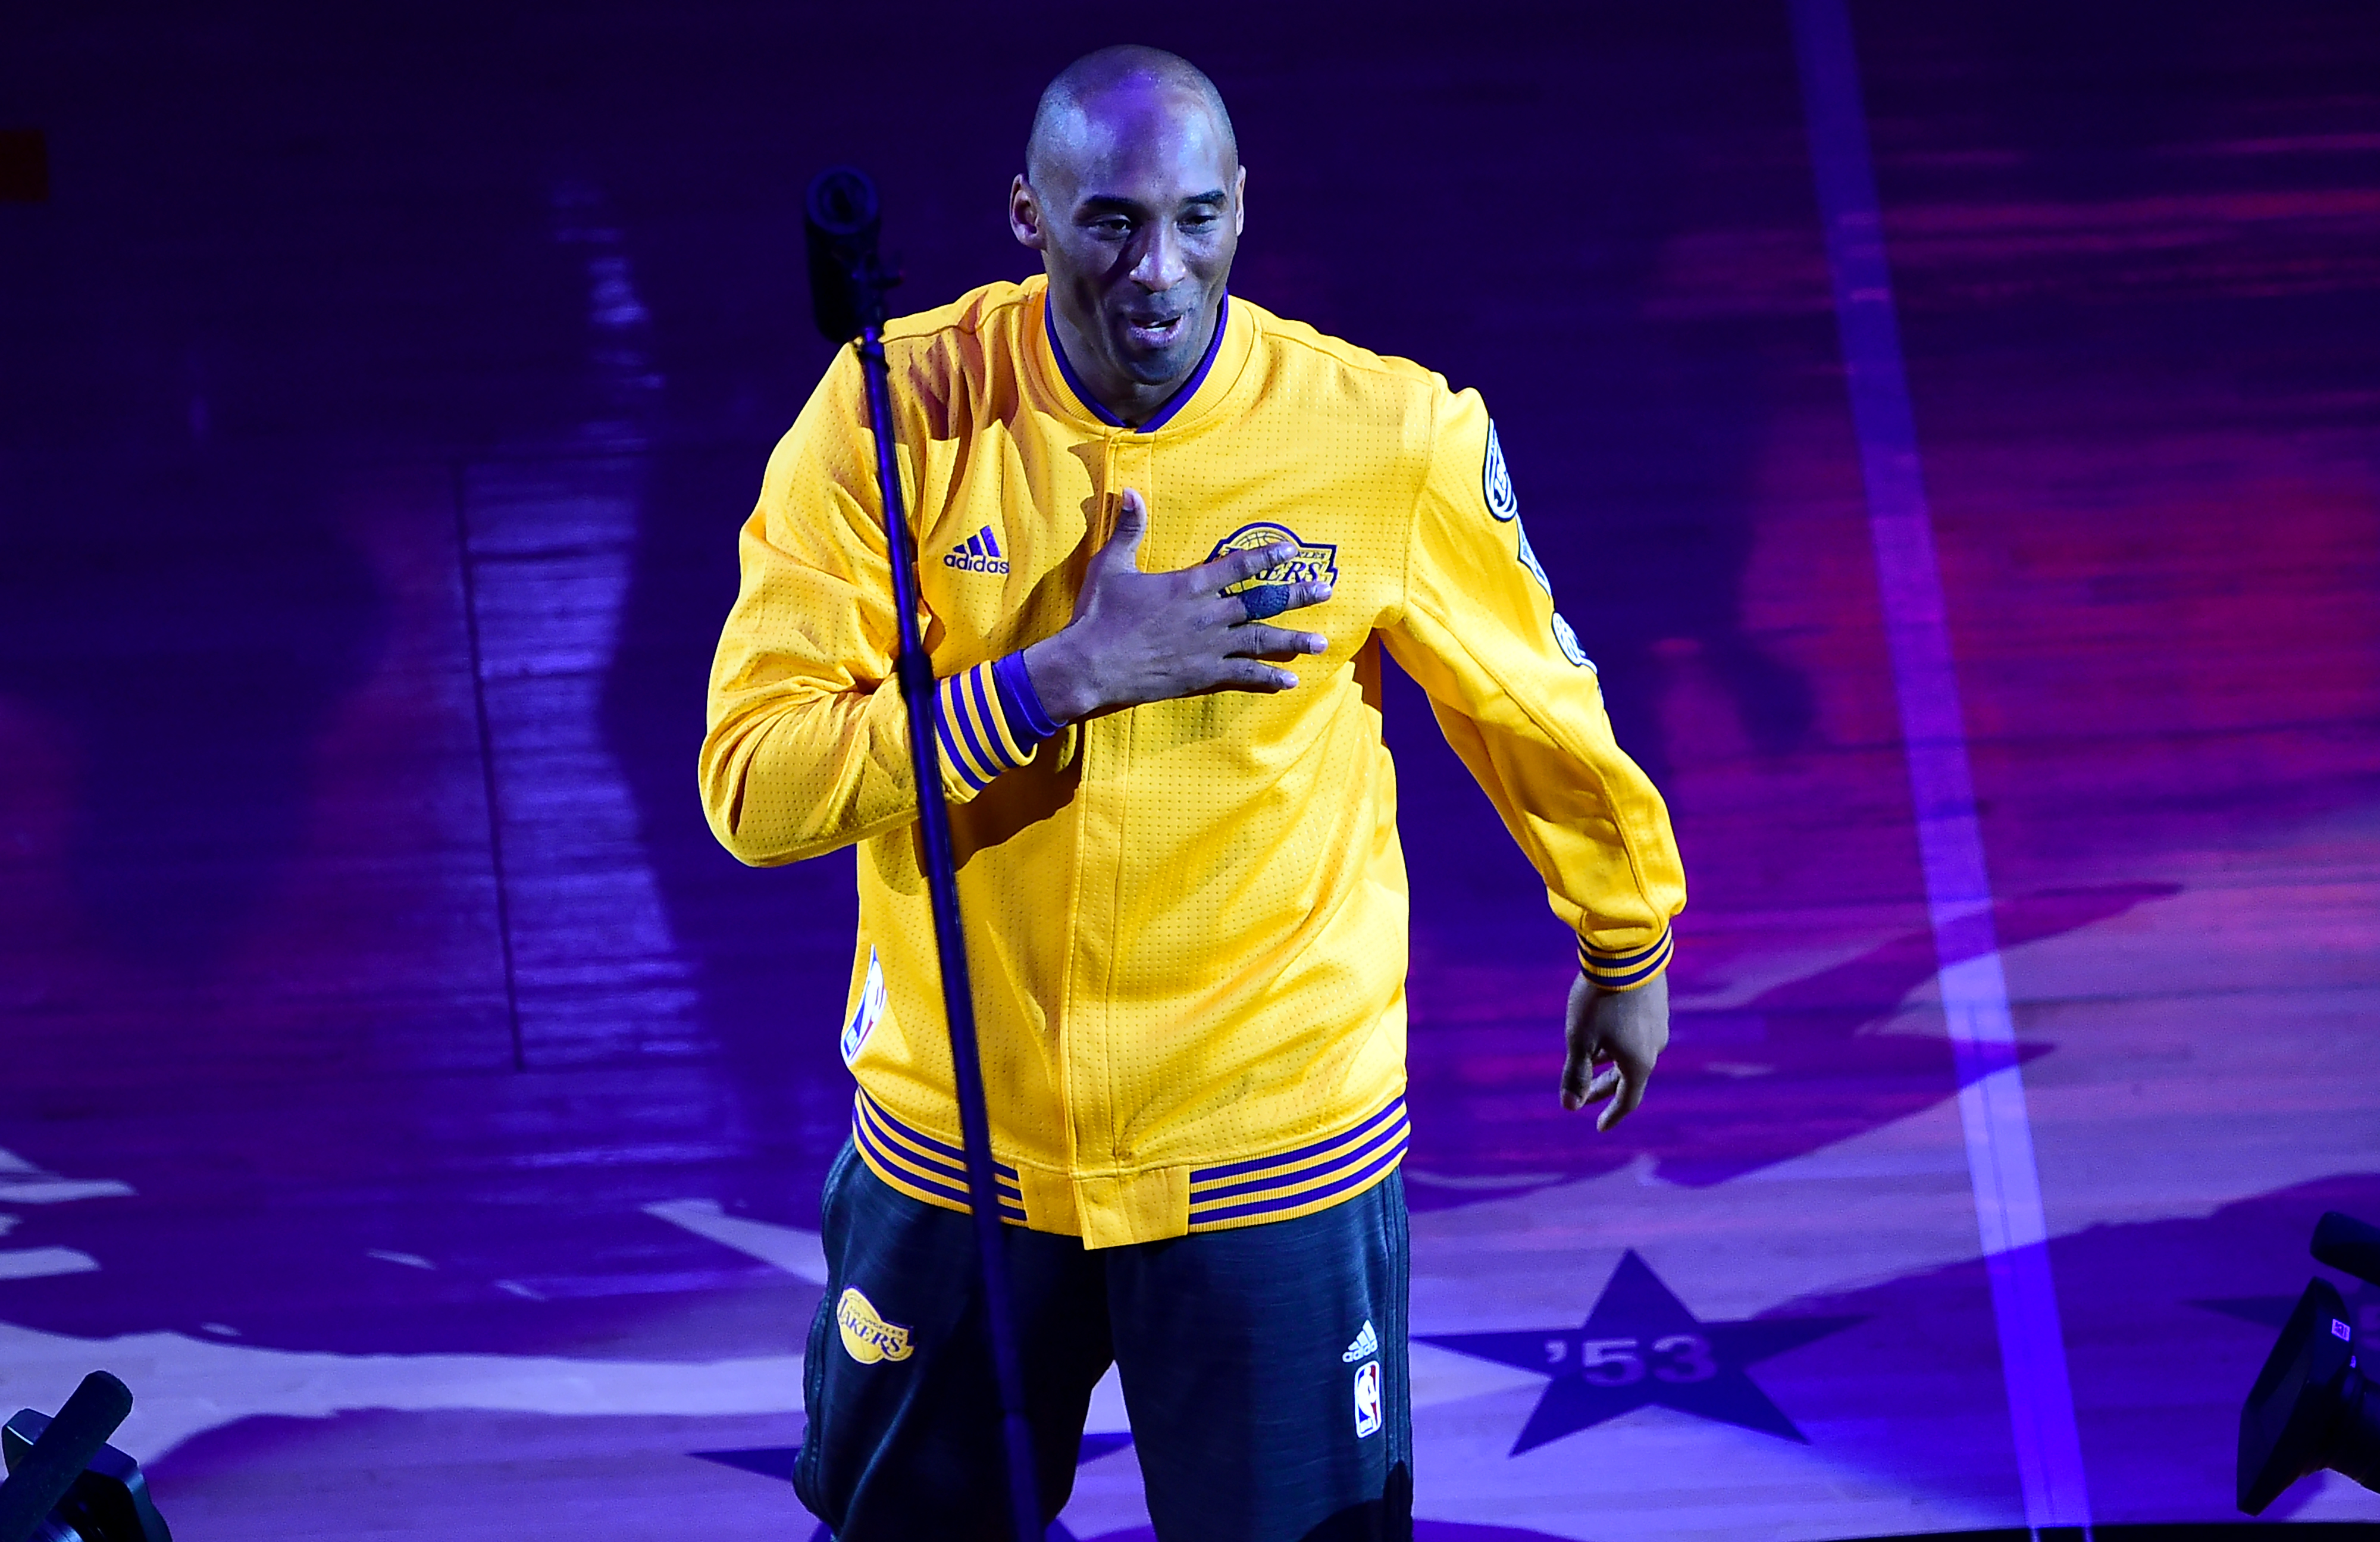 Kobe Bryant gestures as he takes the court for his last game for the Los Angeles Lakers against Utah Jazz in their season-ending NBA western division matchup n Los Angeles, California on April 13, 2016. / AFP PHOTO / FREDERIC J. BROWN